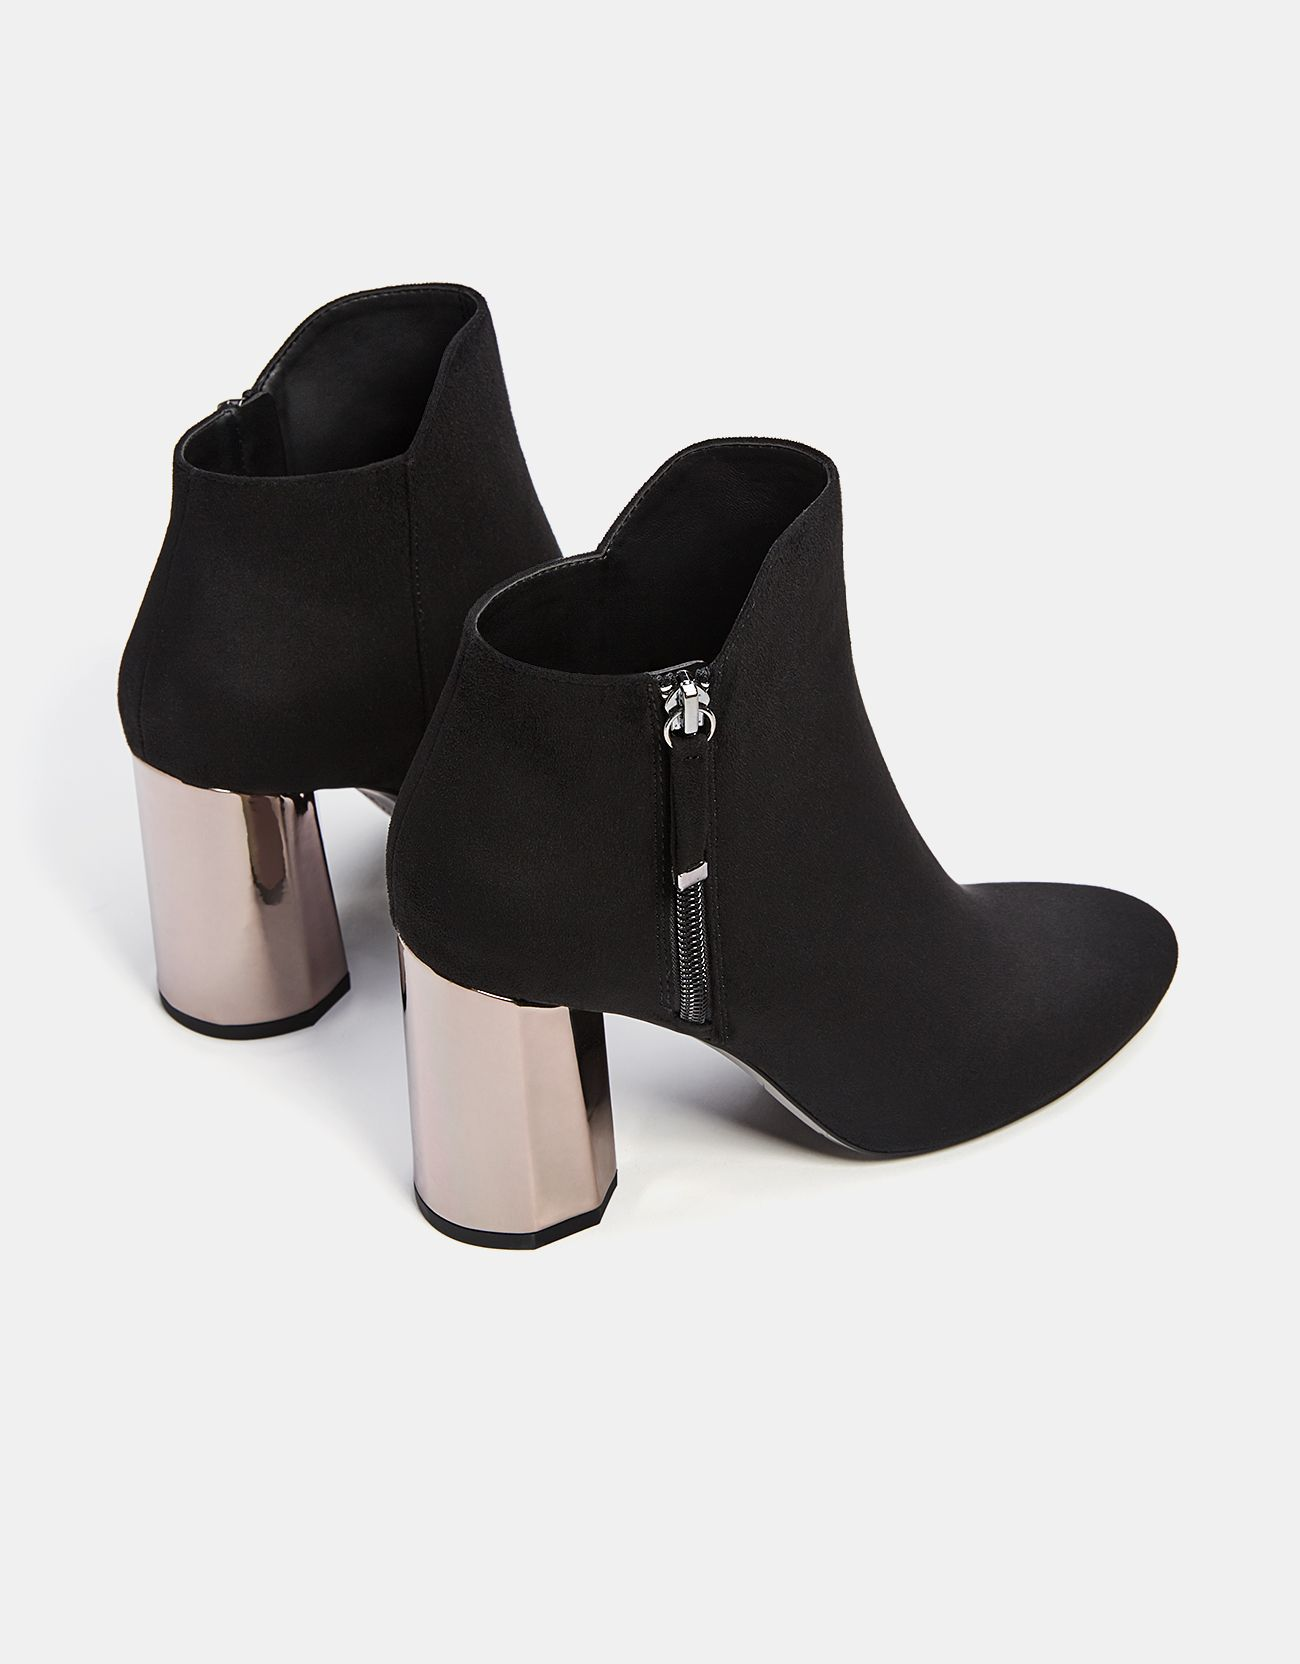 e6a9b64e4e457 High heel metallic ankle boots. Discover this and many more items in  Bershka with new products every week